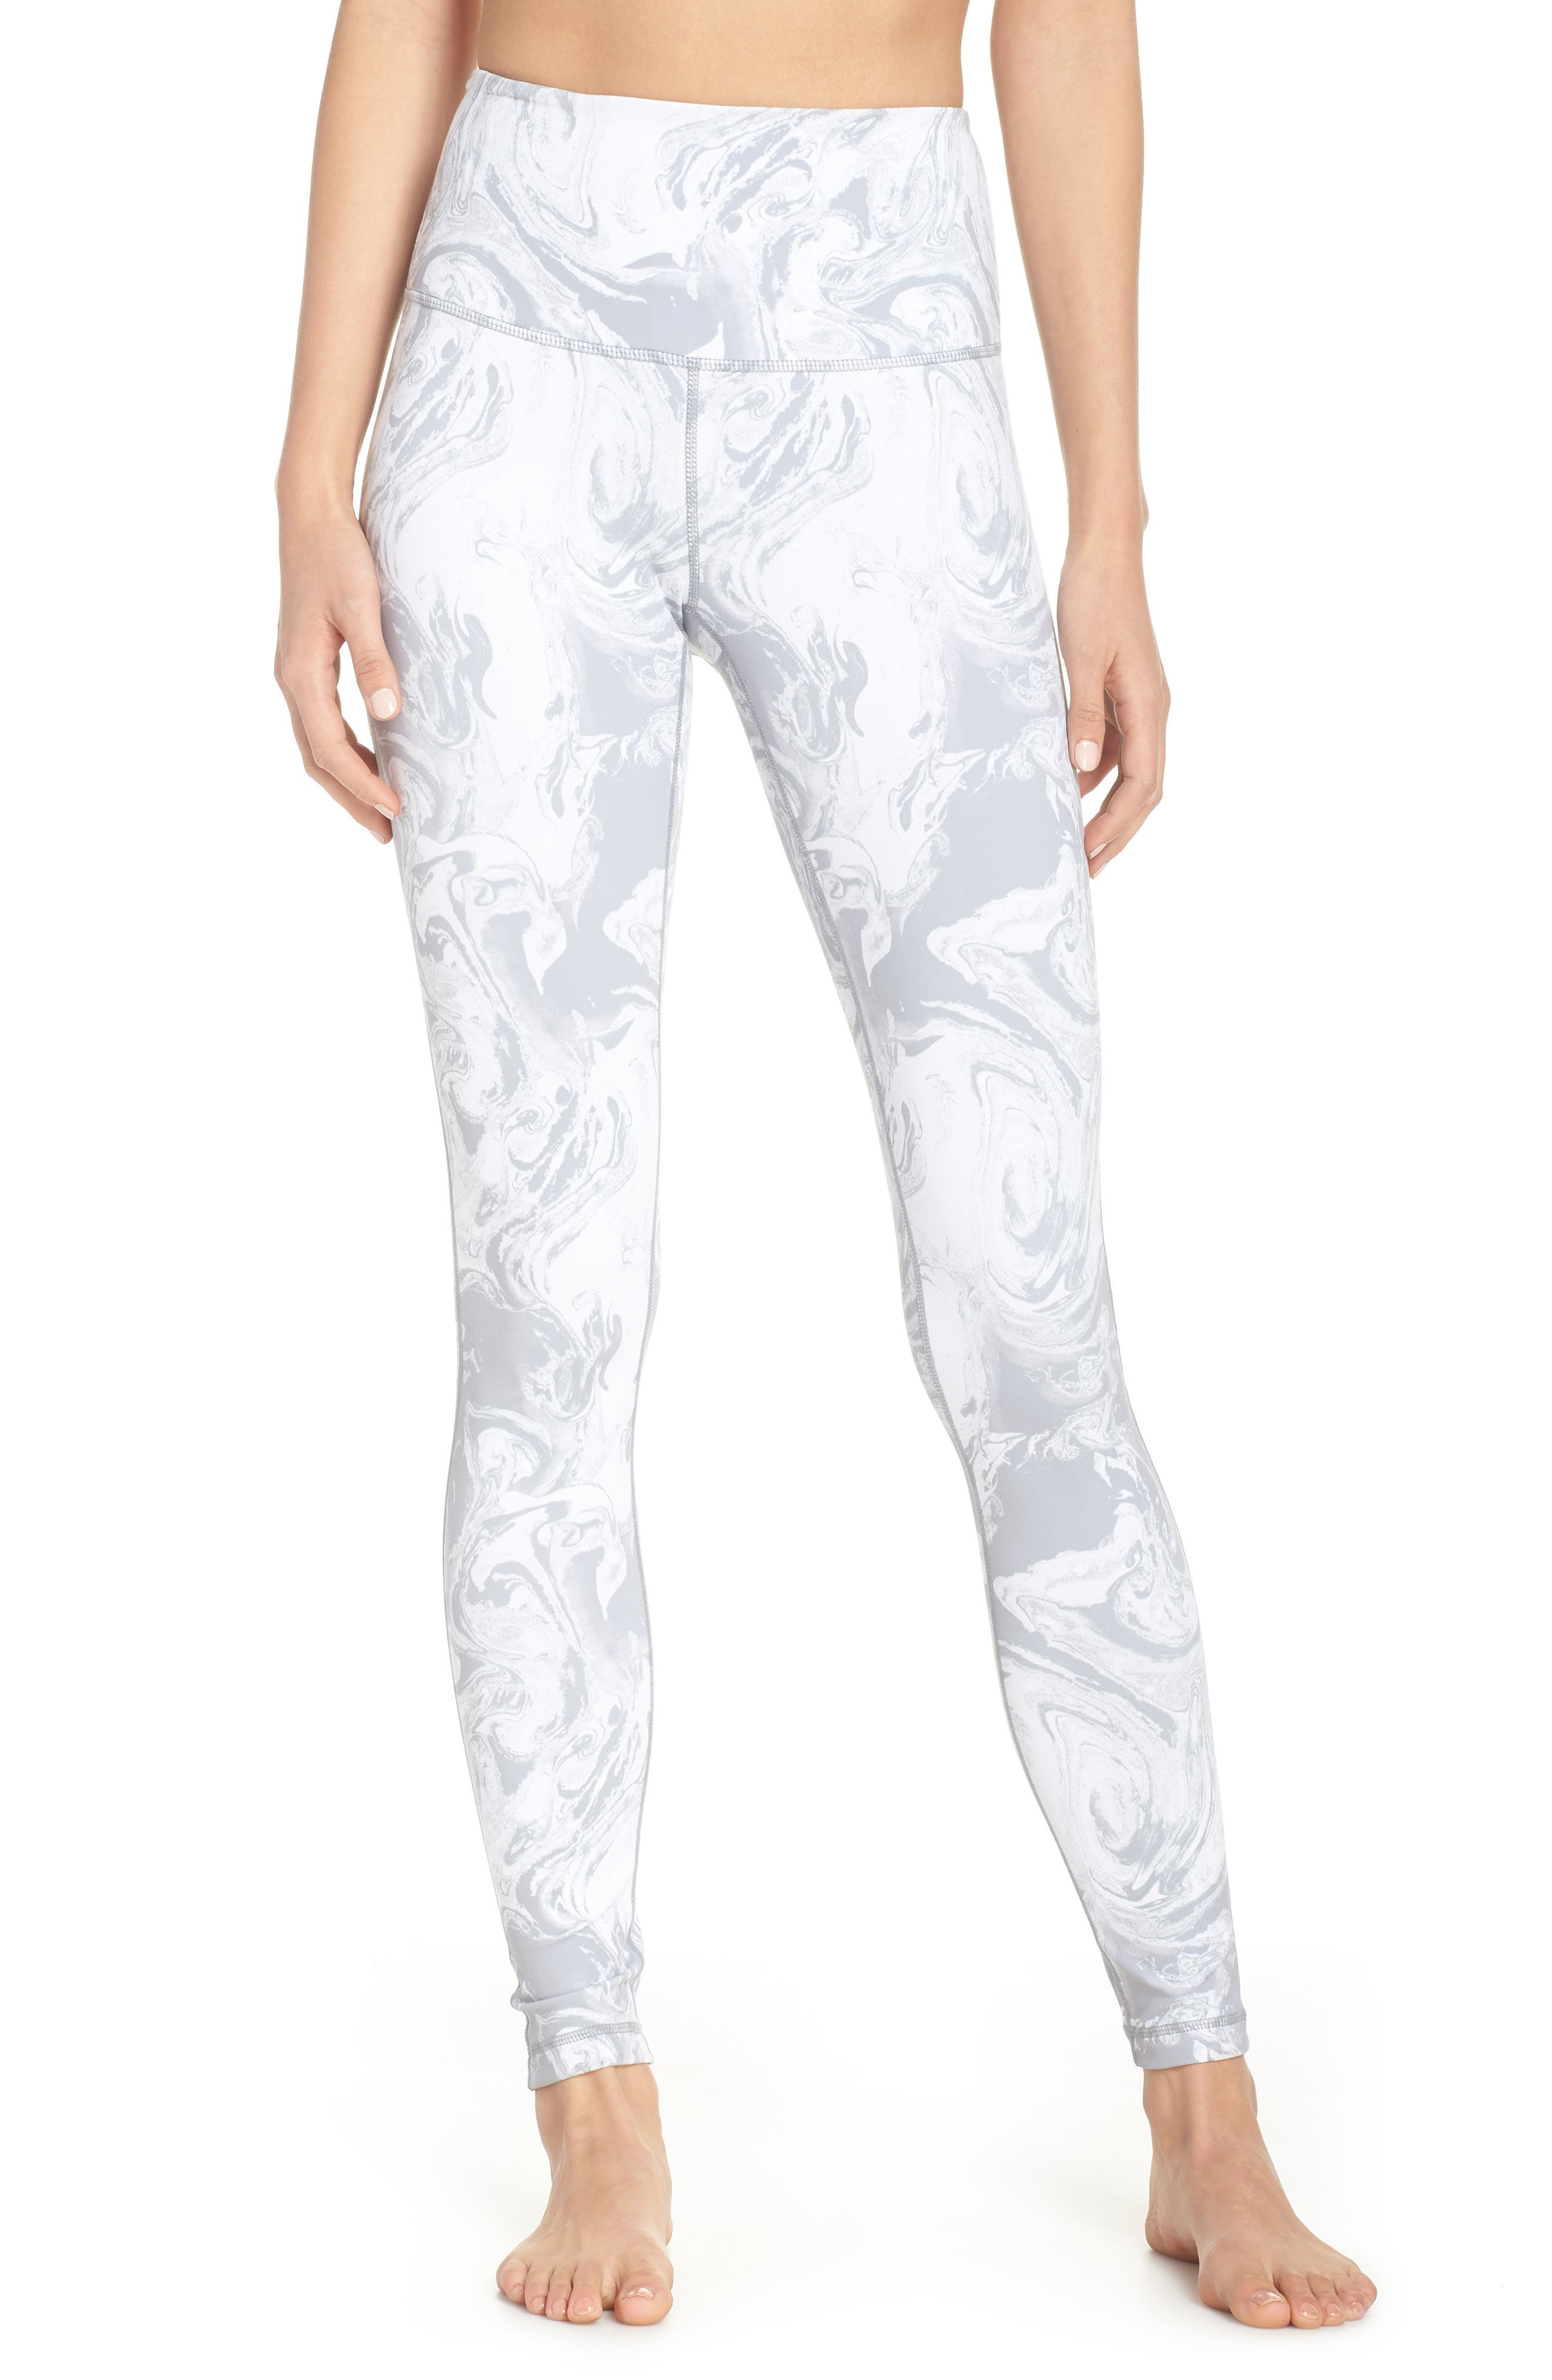 Live In High Waist Leggings,                             Main thumbnail 1, color,                             GREY SCONCE PRETTY MARBLE